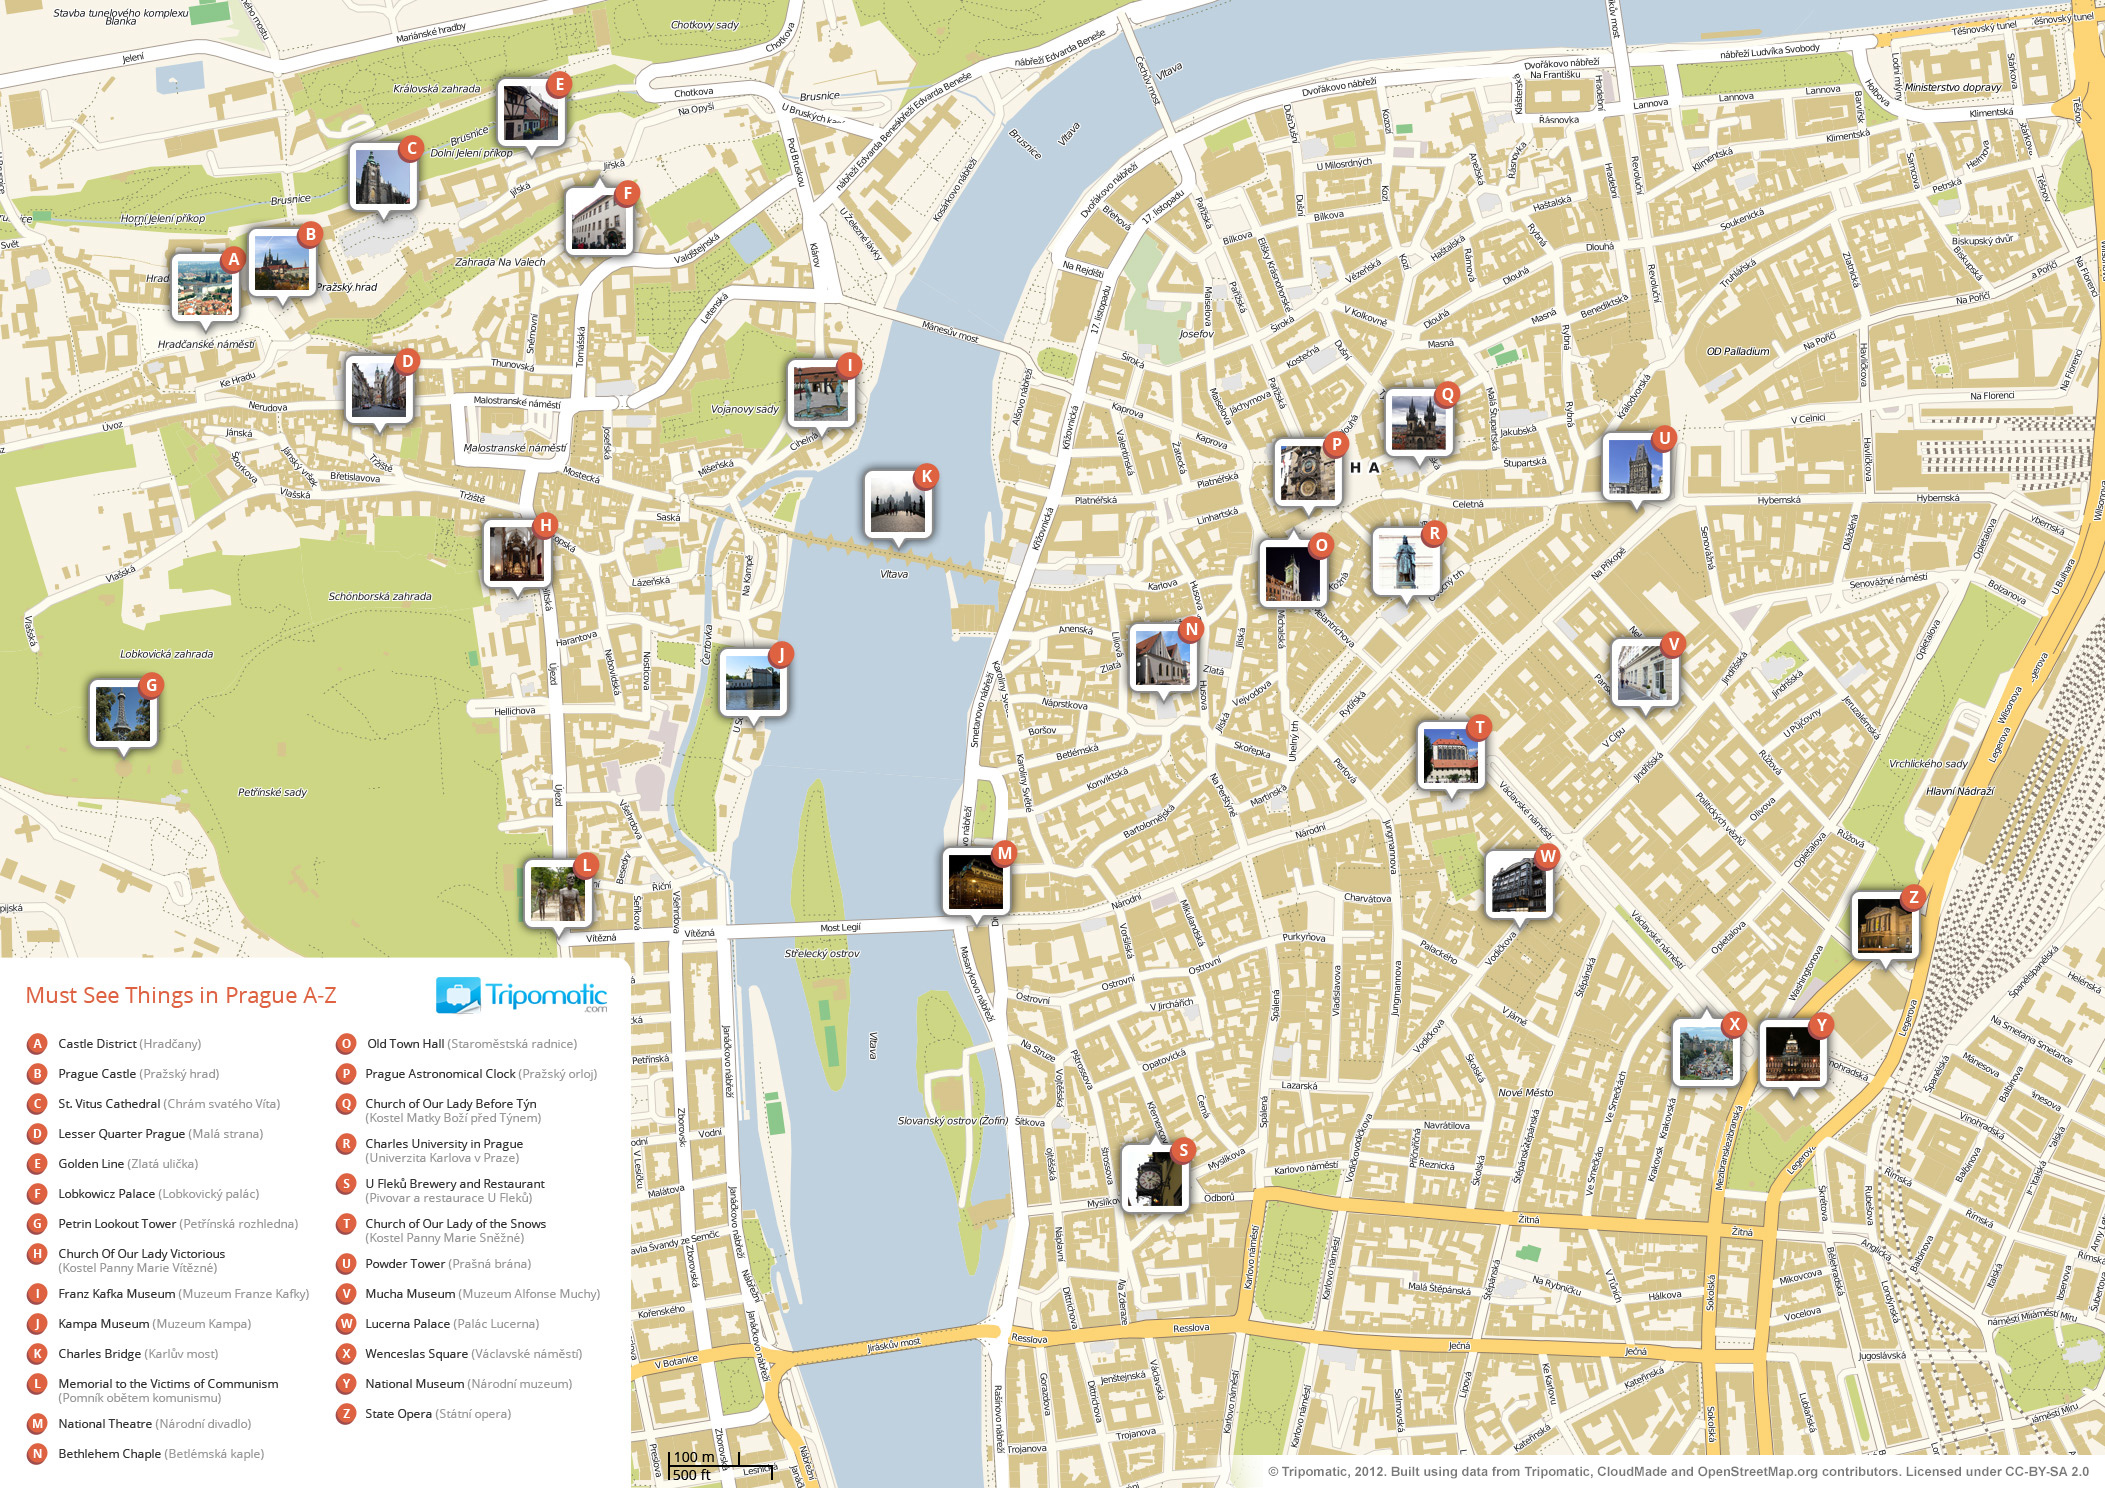 fileprague printable tourist attractions map  wikimedia commons - fileprague printable tourist attractions map